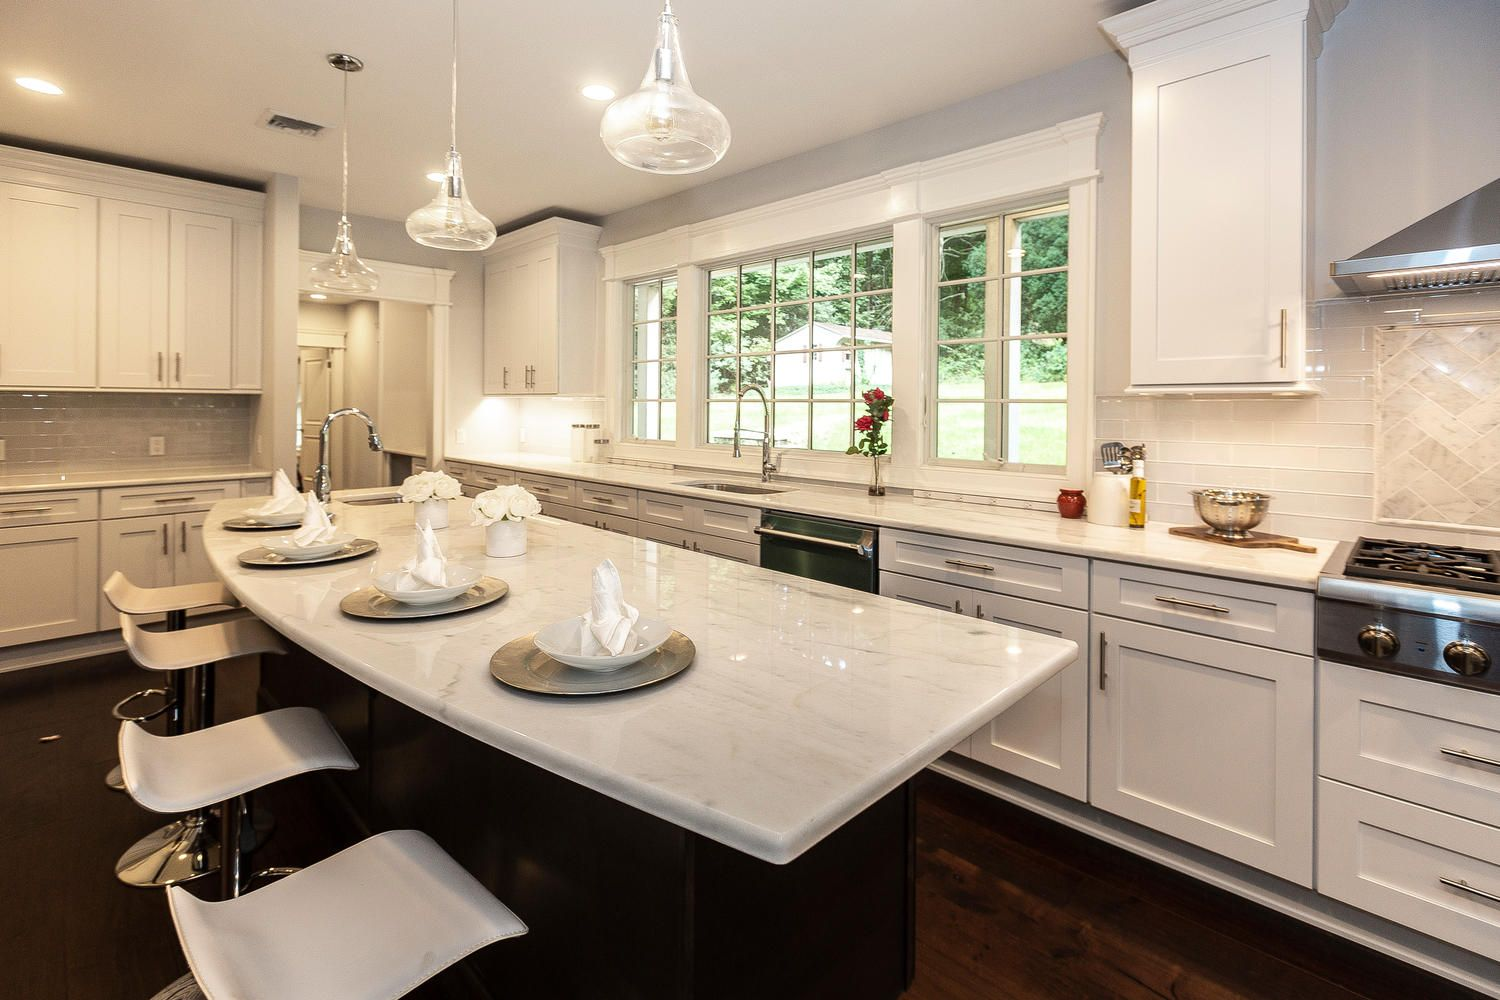 Good Kitchen Lighting Design Is A Must The Rule Of Thumb When